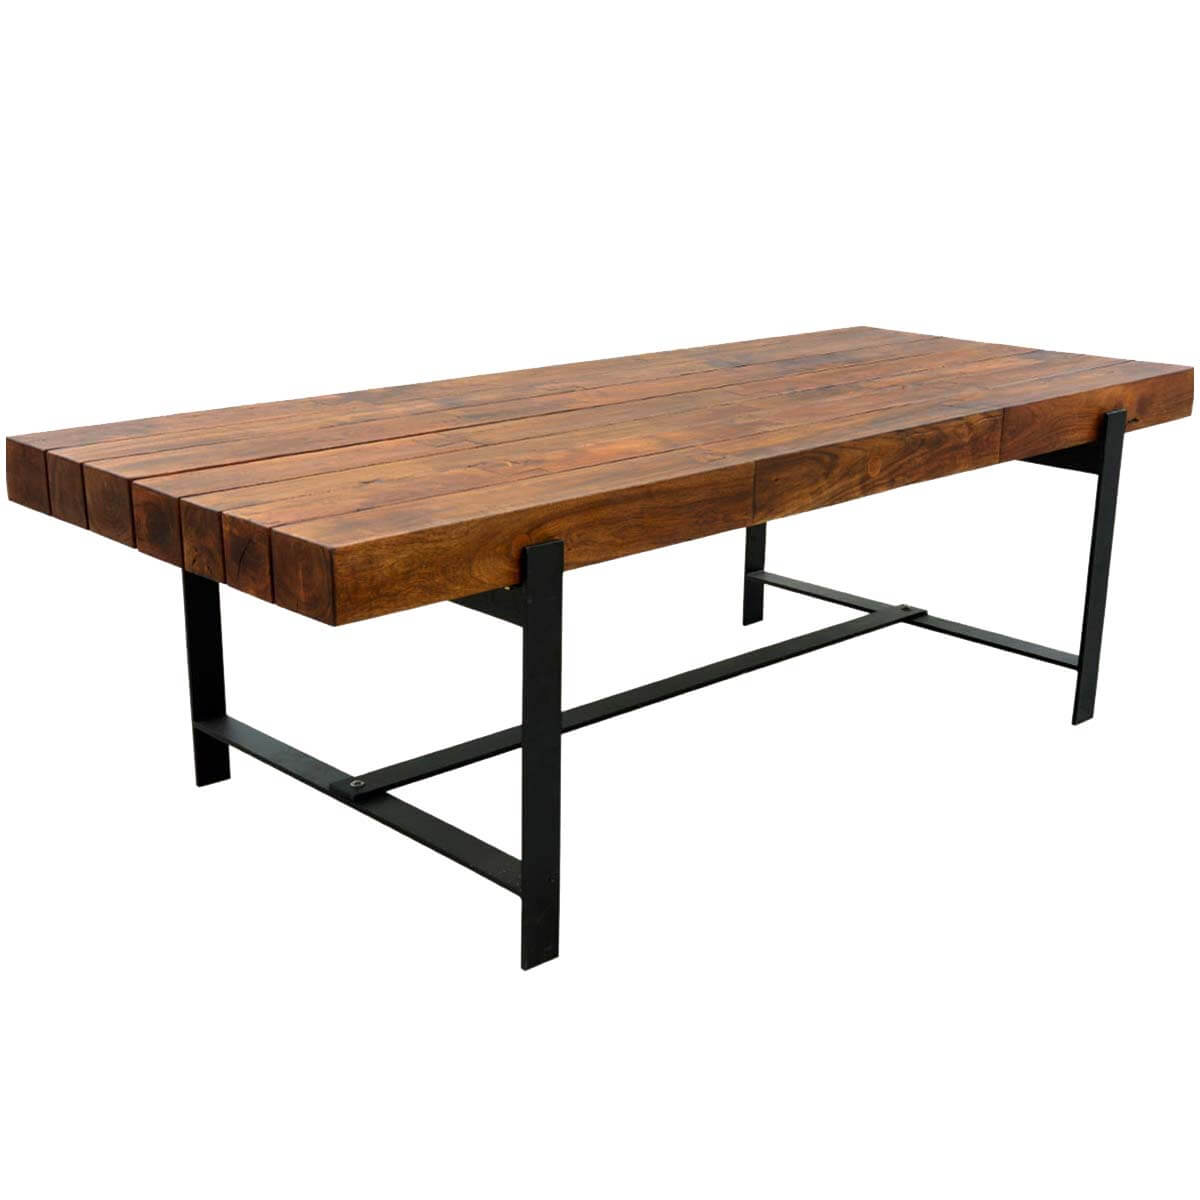 Industrial iron acacia wood 94 large rustic dining table Best wood for dining table